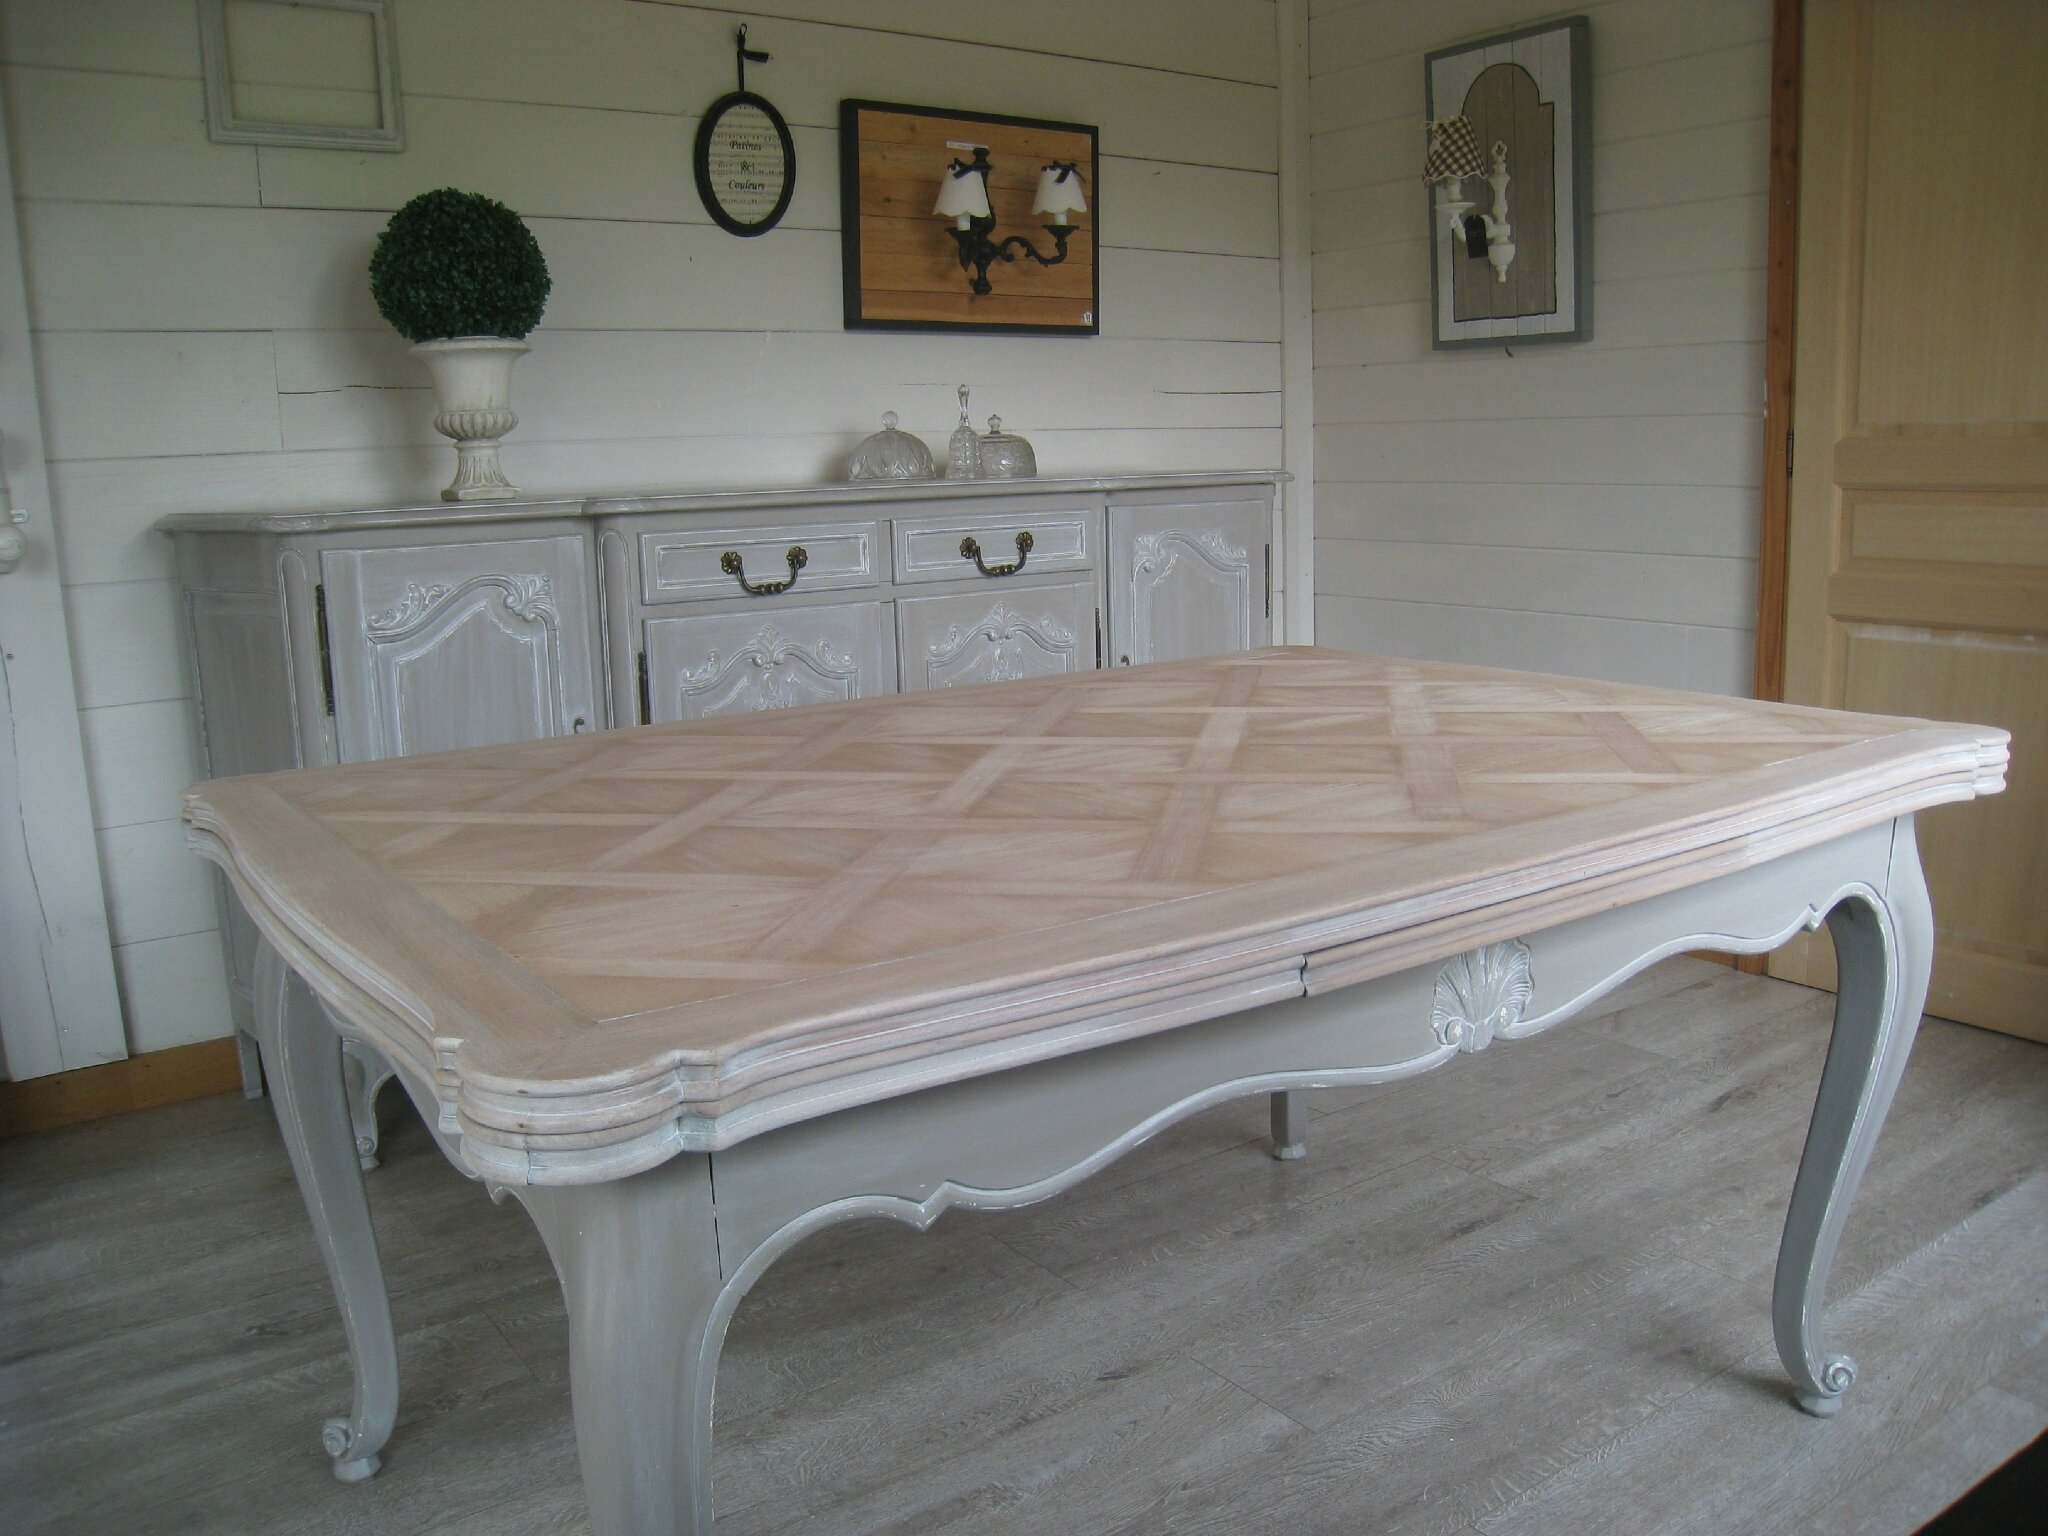 Bahut r gence relook et sa table assortie 2 patines - Customiser un plateau en bois ...